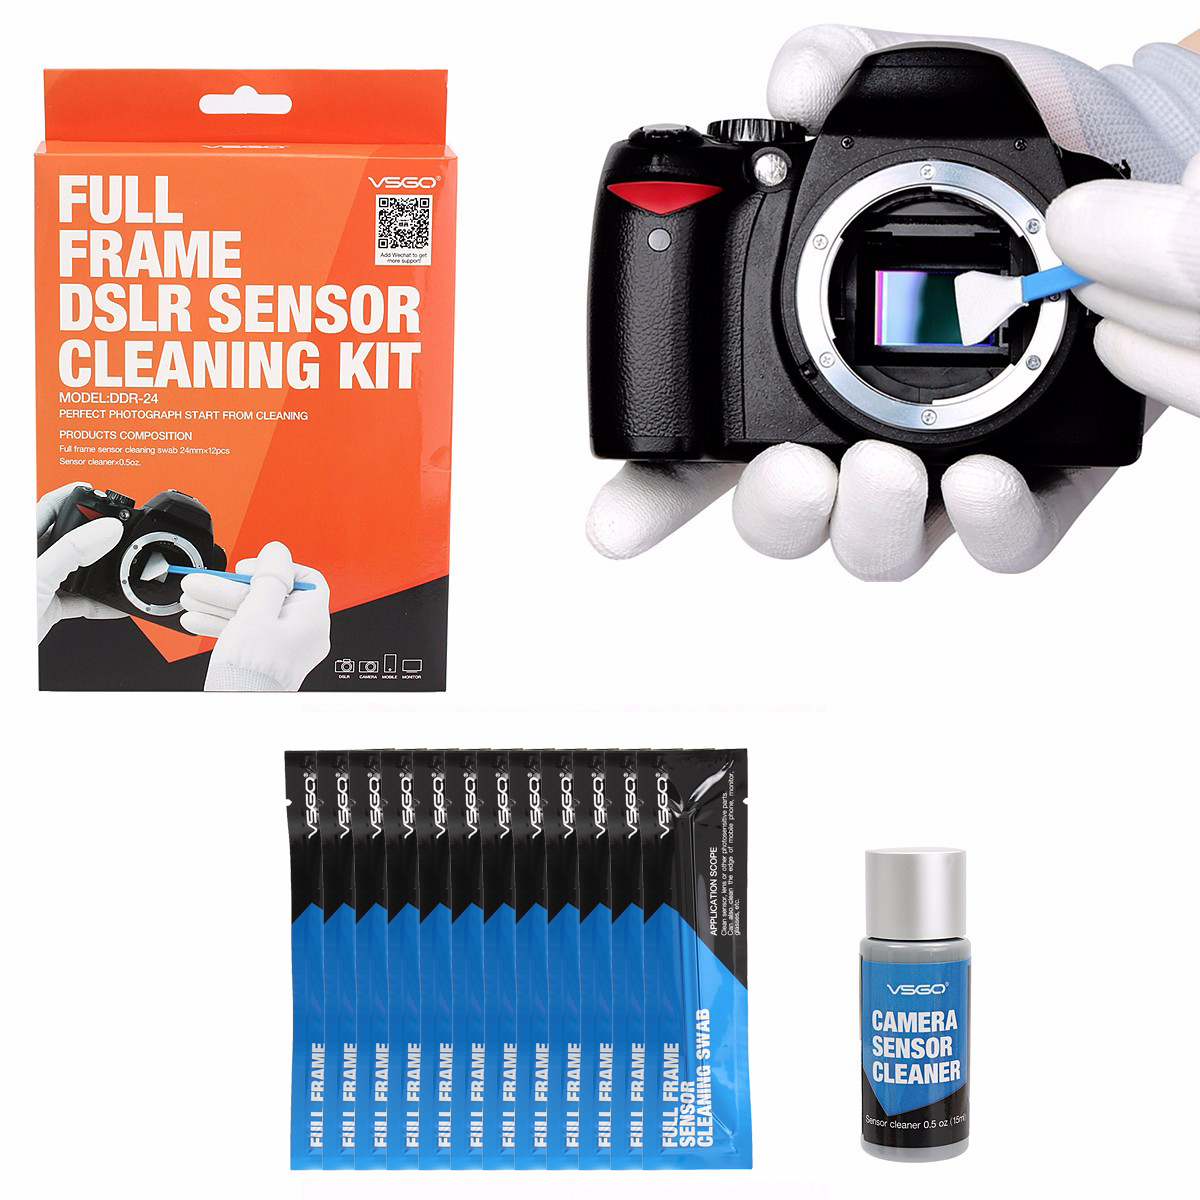 VSGO DDR-24 12PCS Professional Full Frame CCD CMOS Cleaning Swab Sensor Cleaner Kit for DSLR Cameras